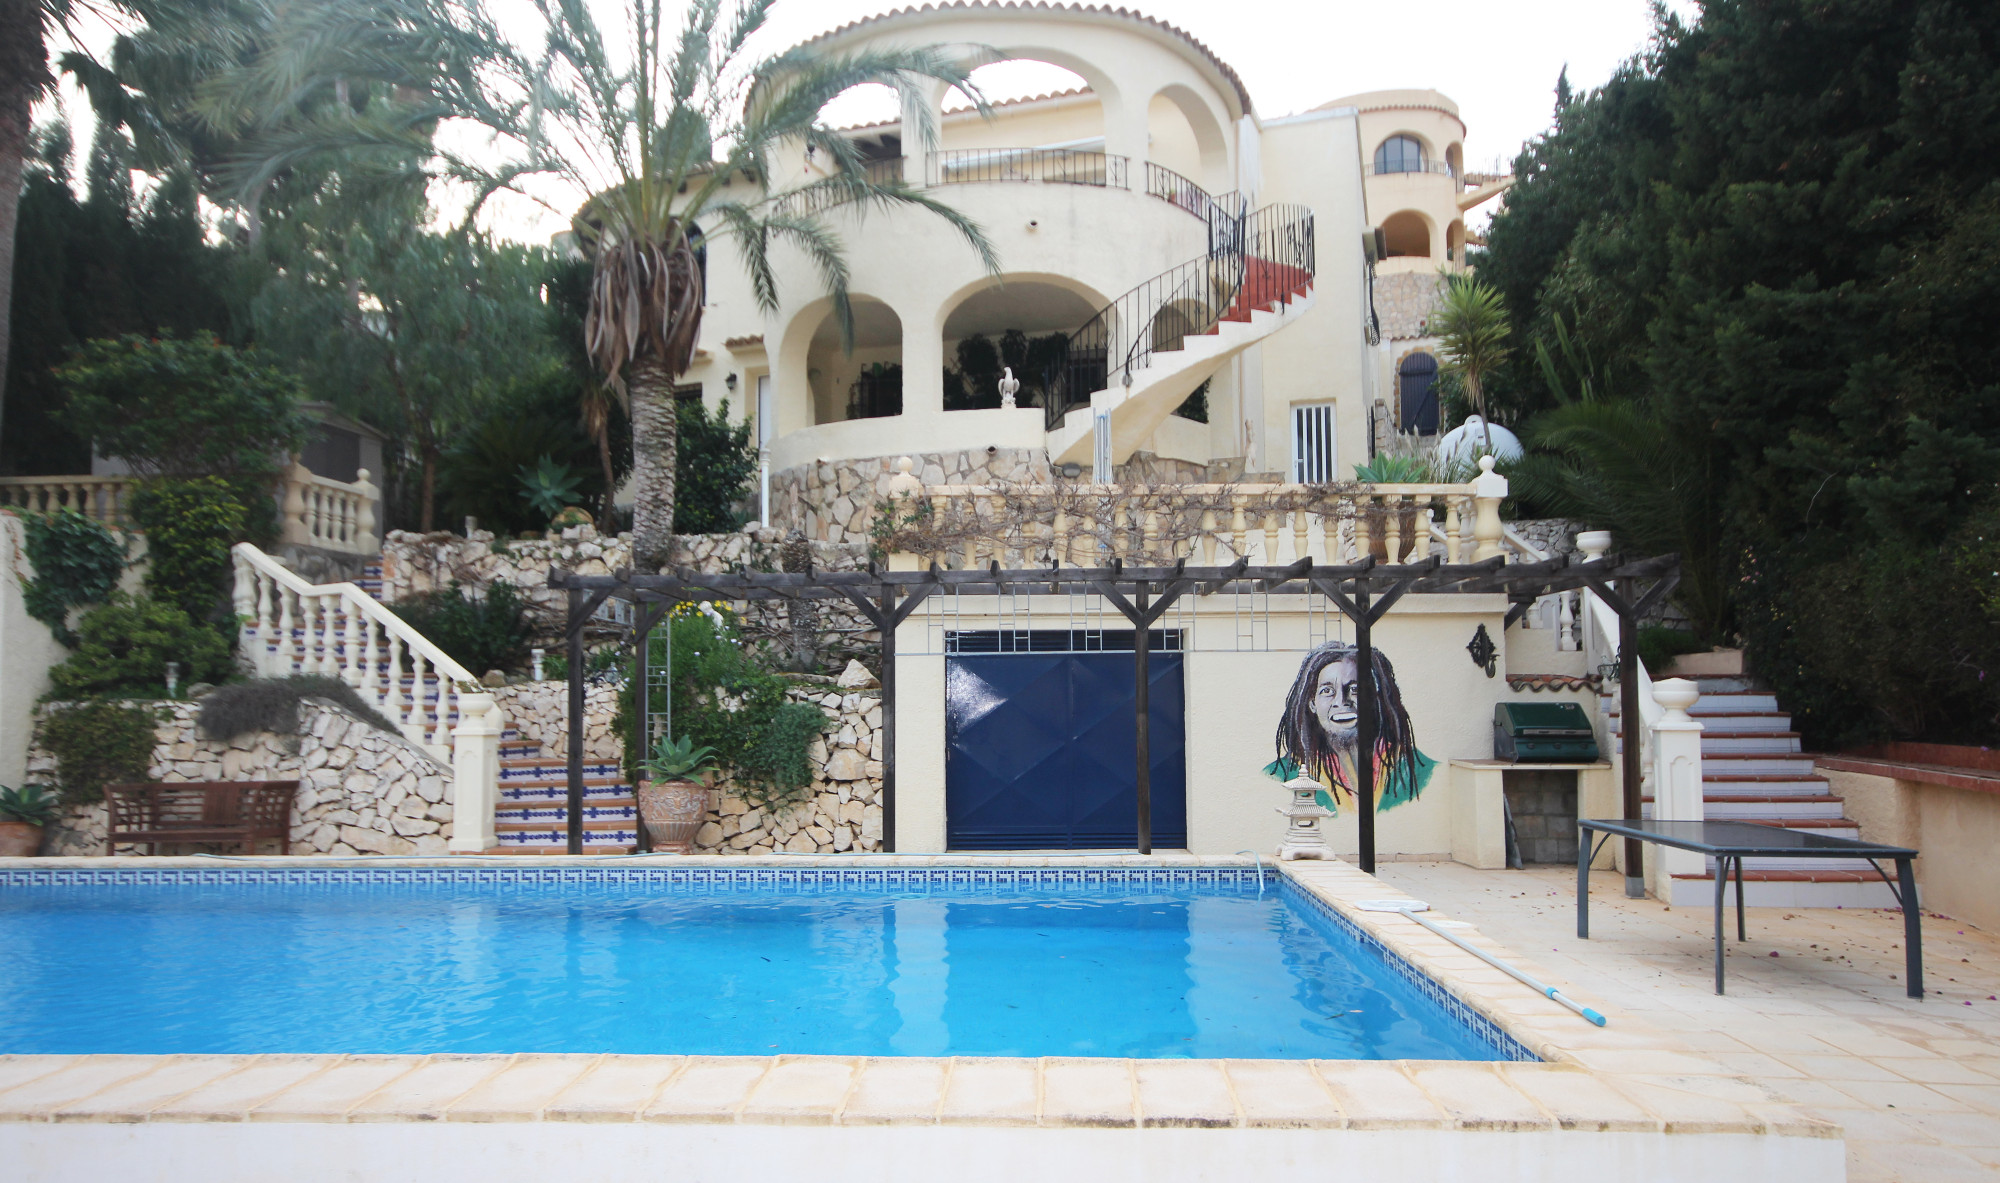 Villa for sale in Benissa Costa – VS02902B